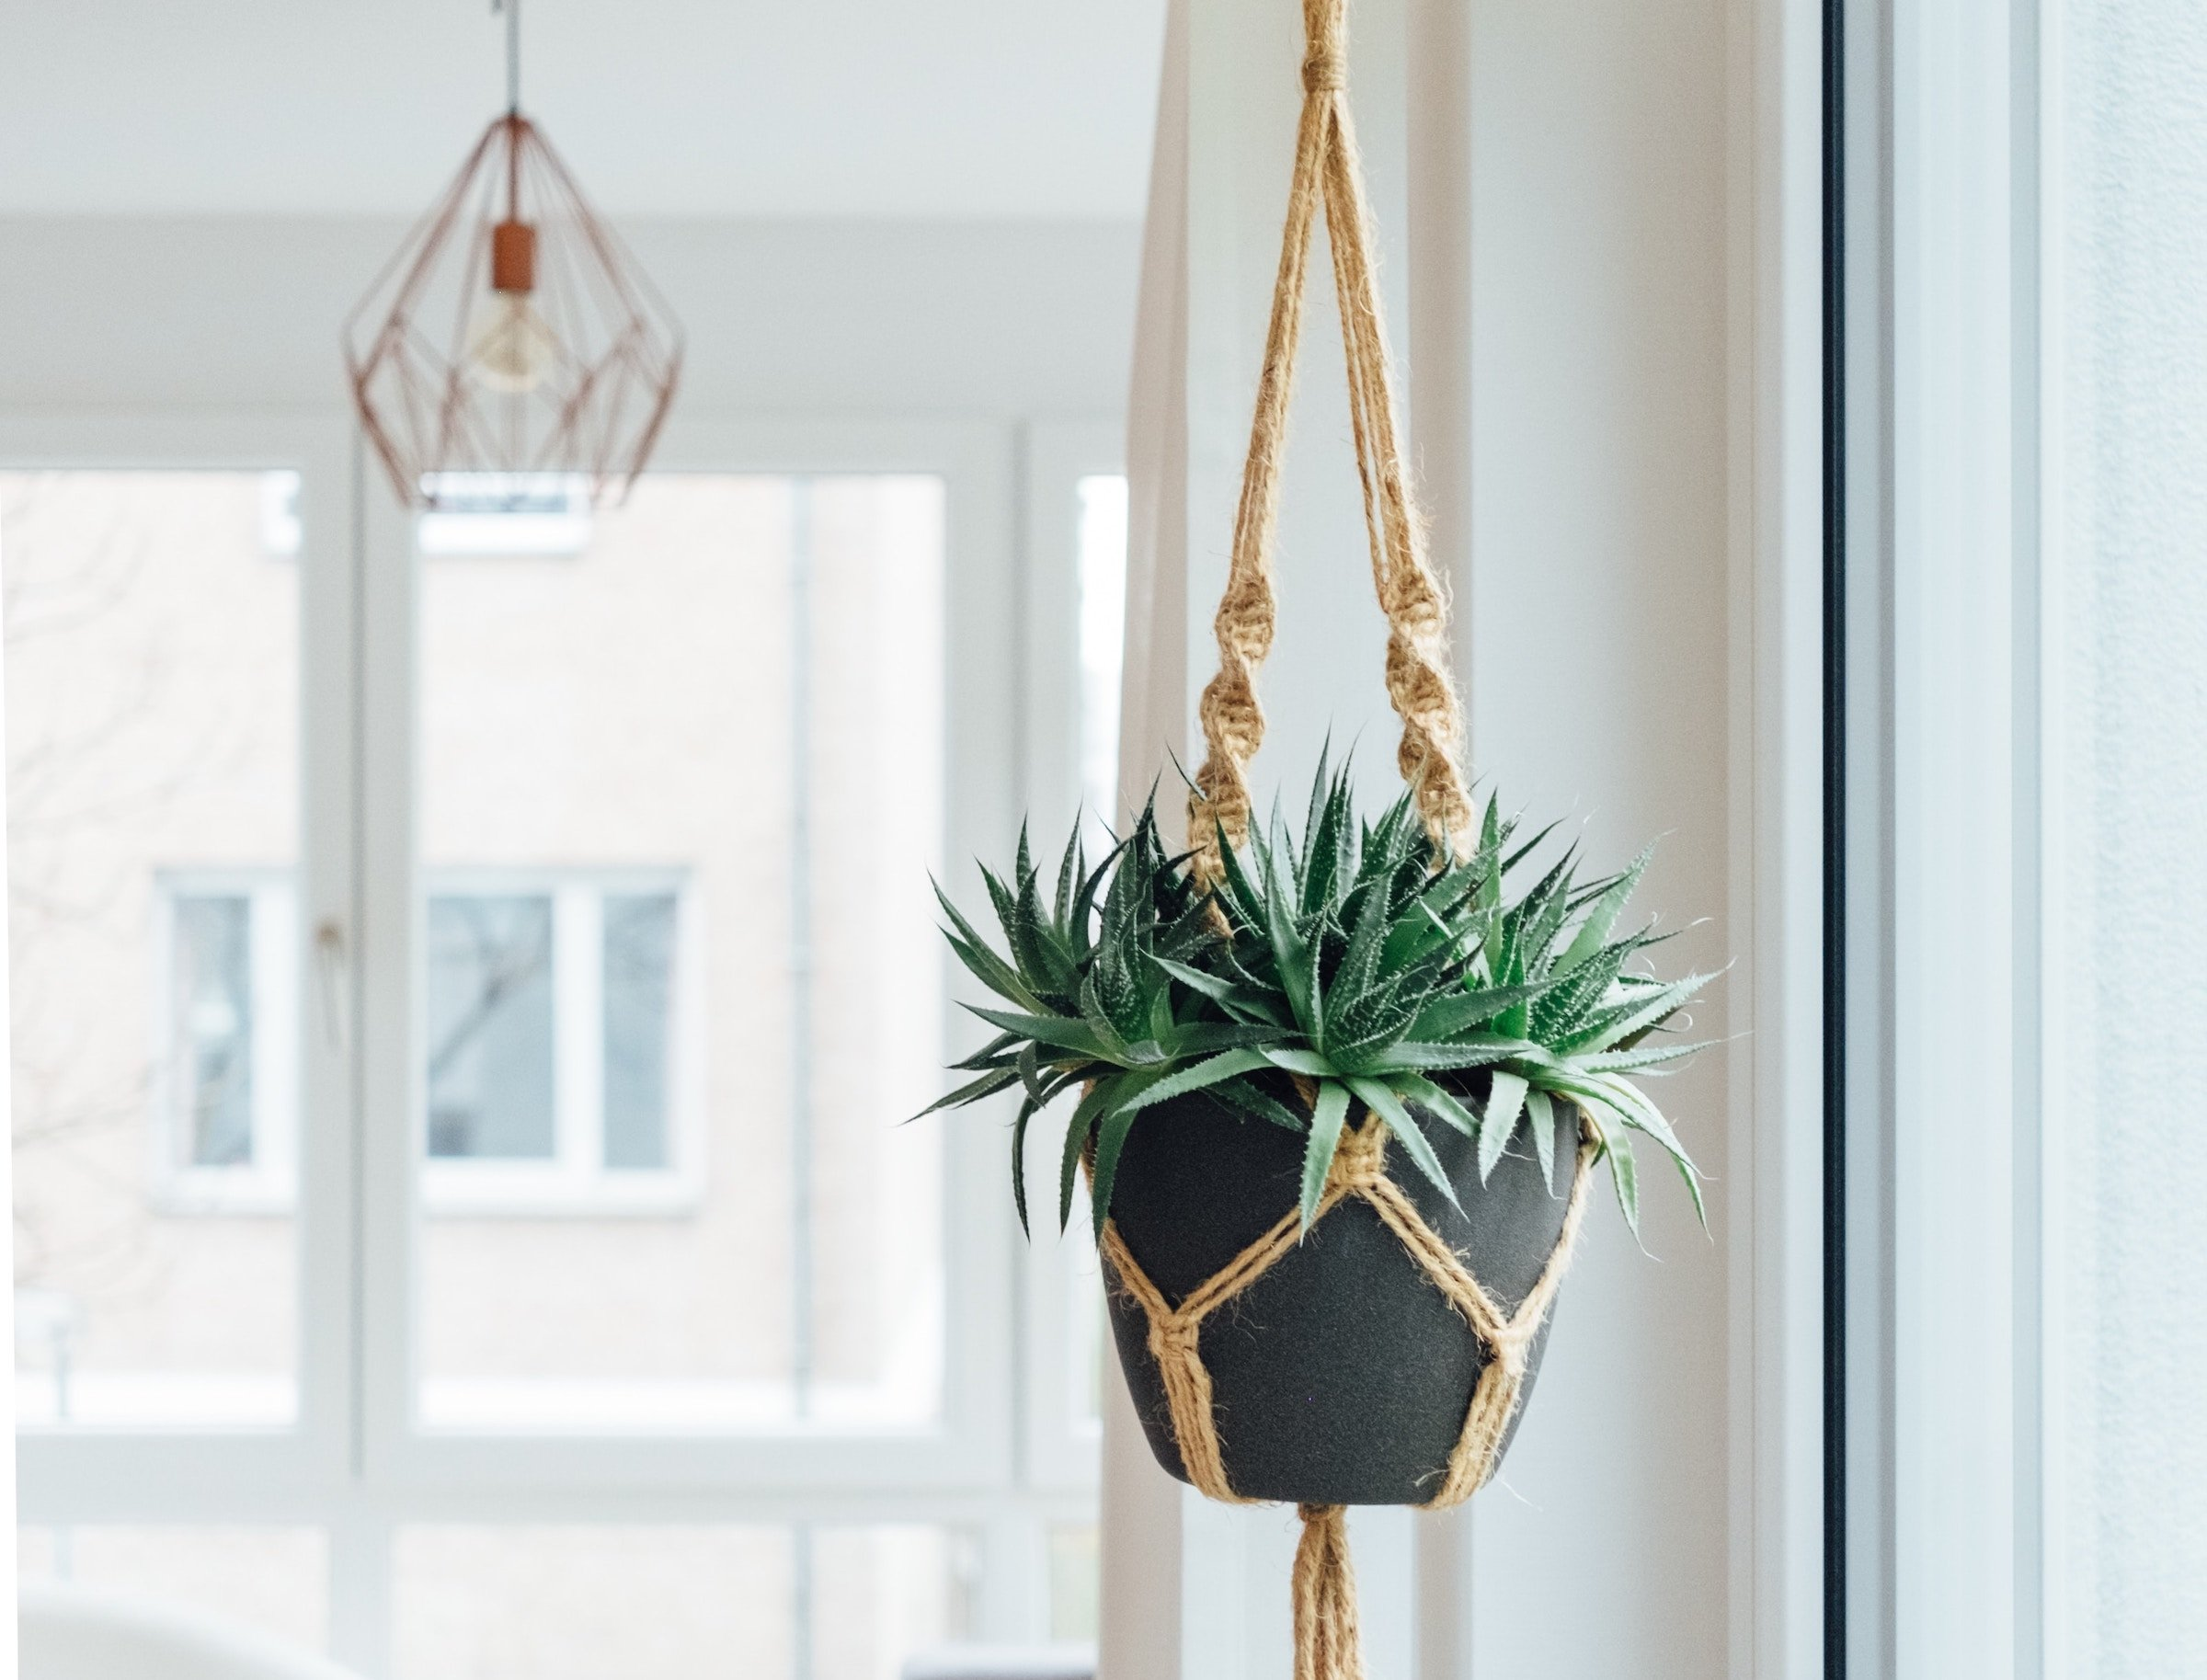 DIY projects for small spaces: add plants to clear the air